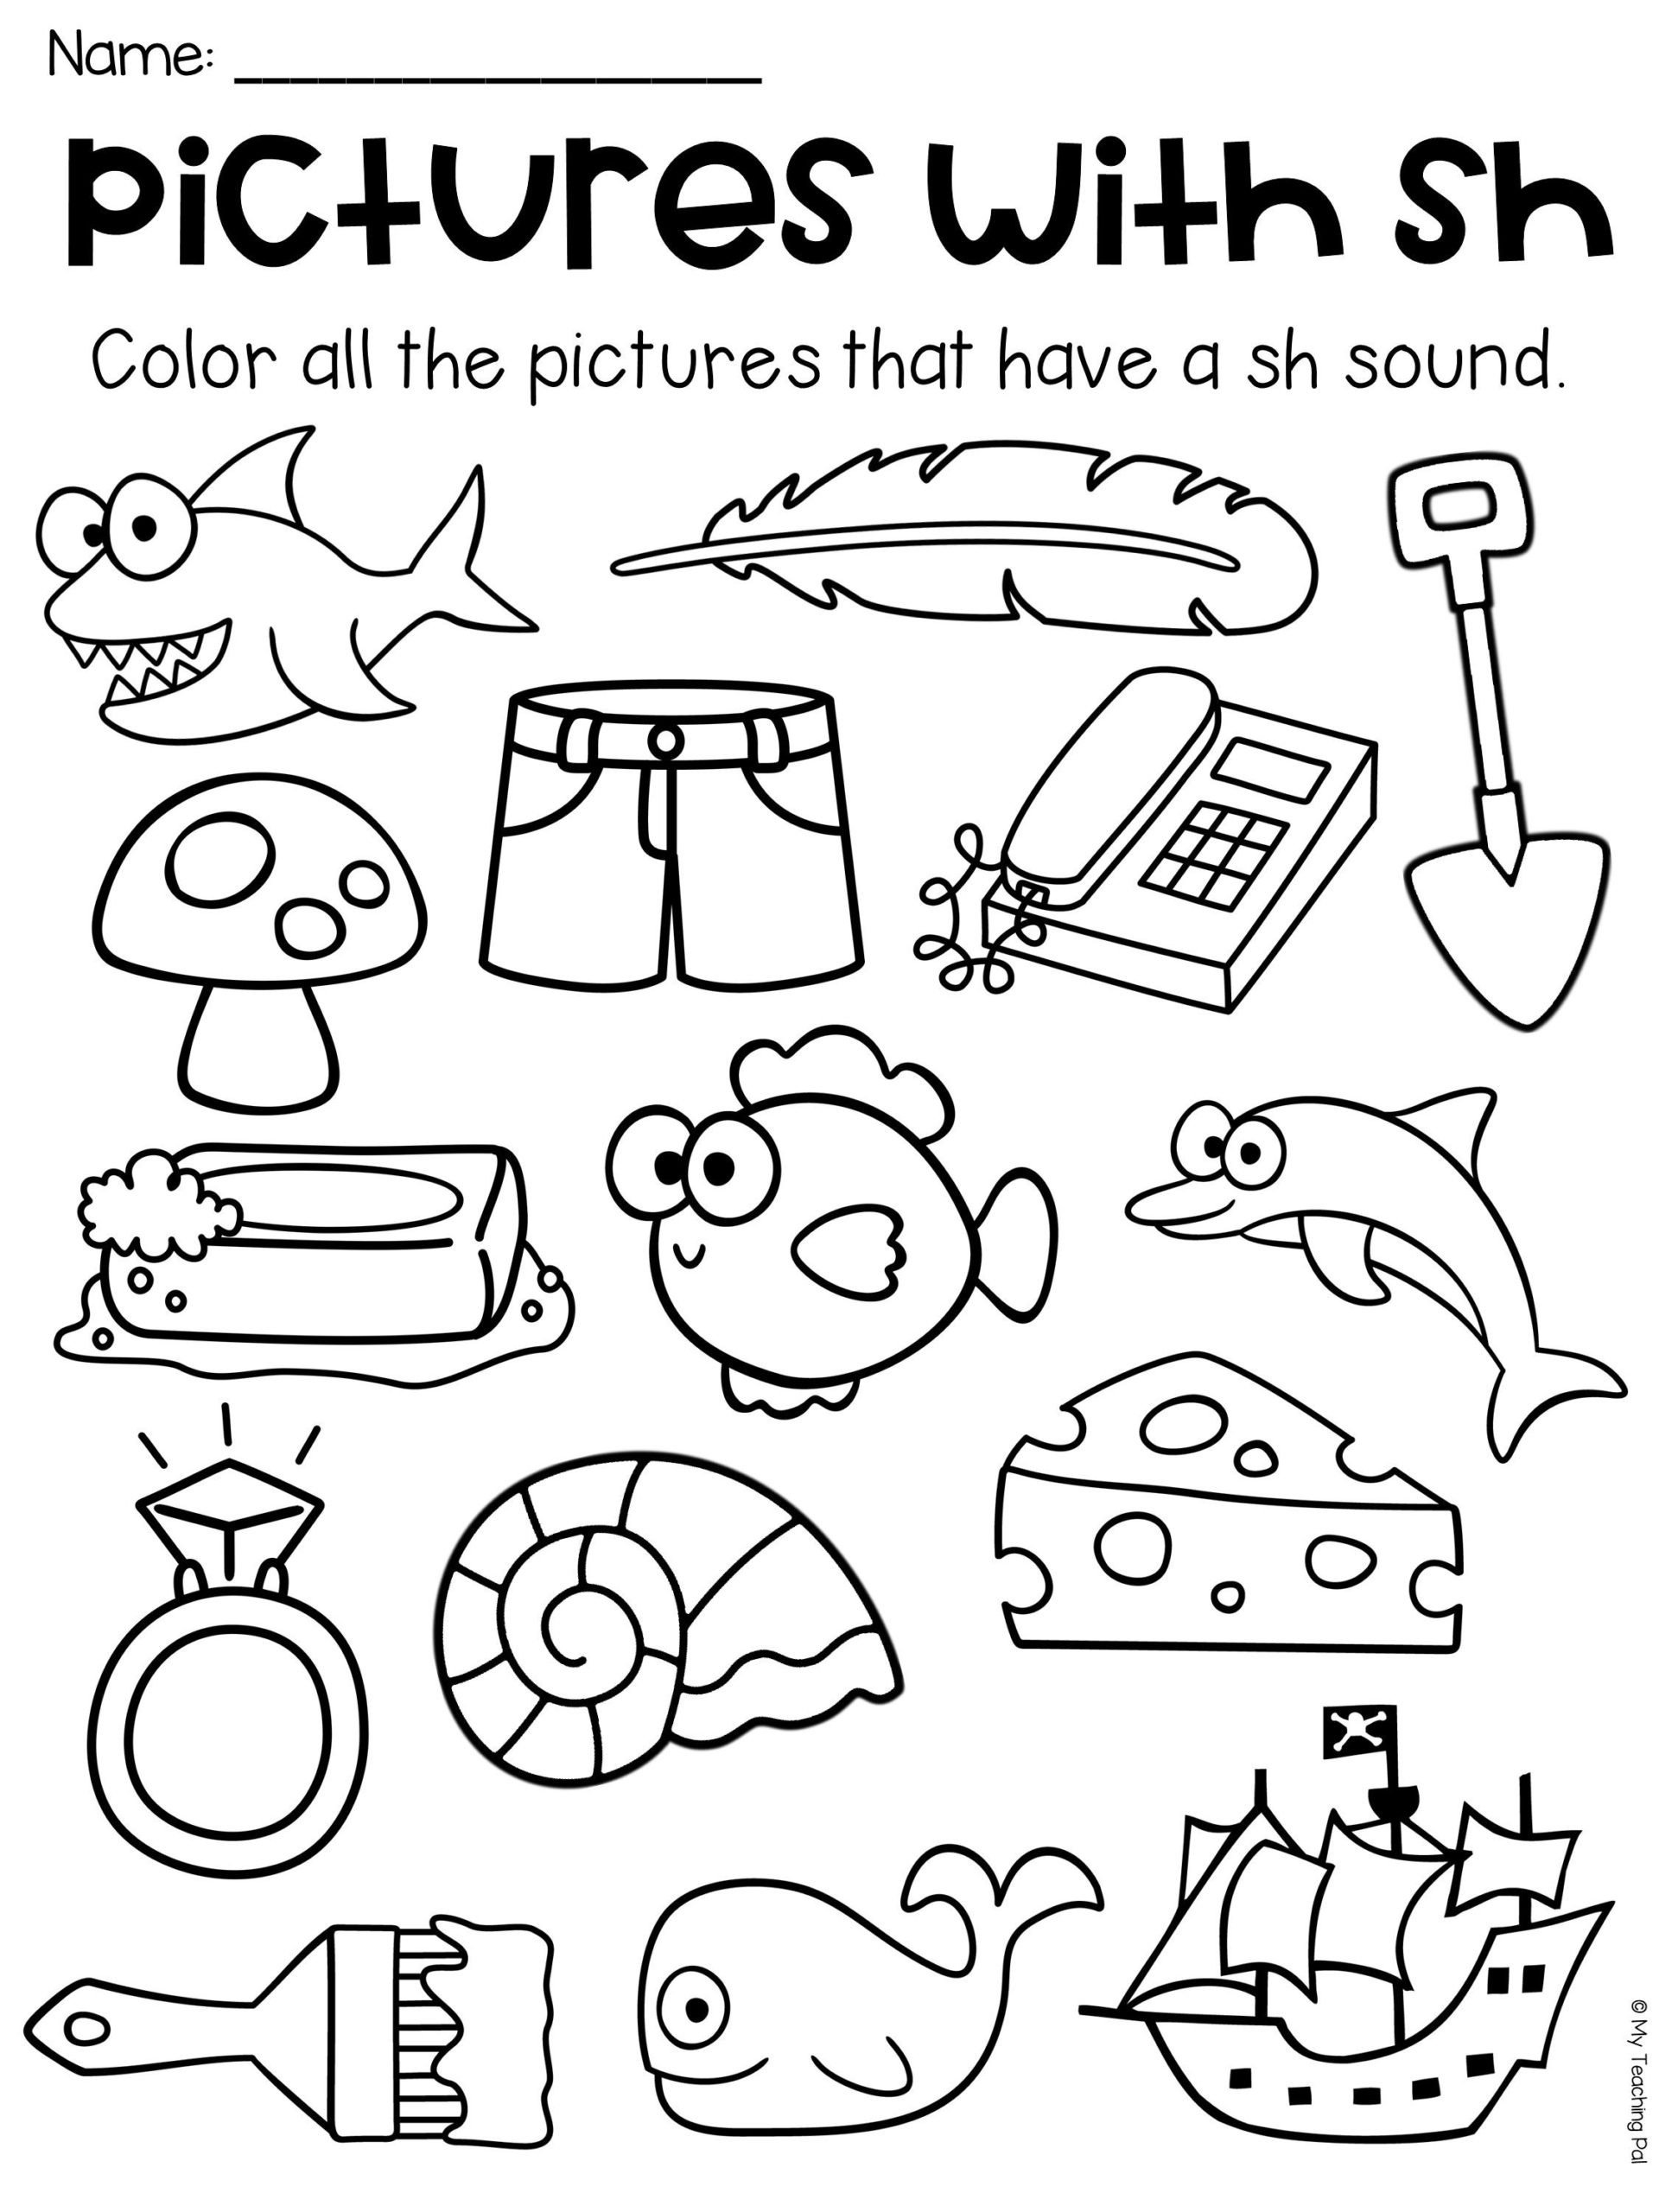 Ch Worksheets for Kindergarten Jolly Phonics Ch Worksheet Printable Worksheets and